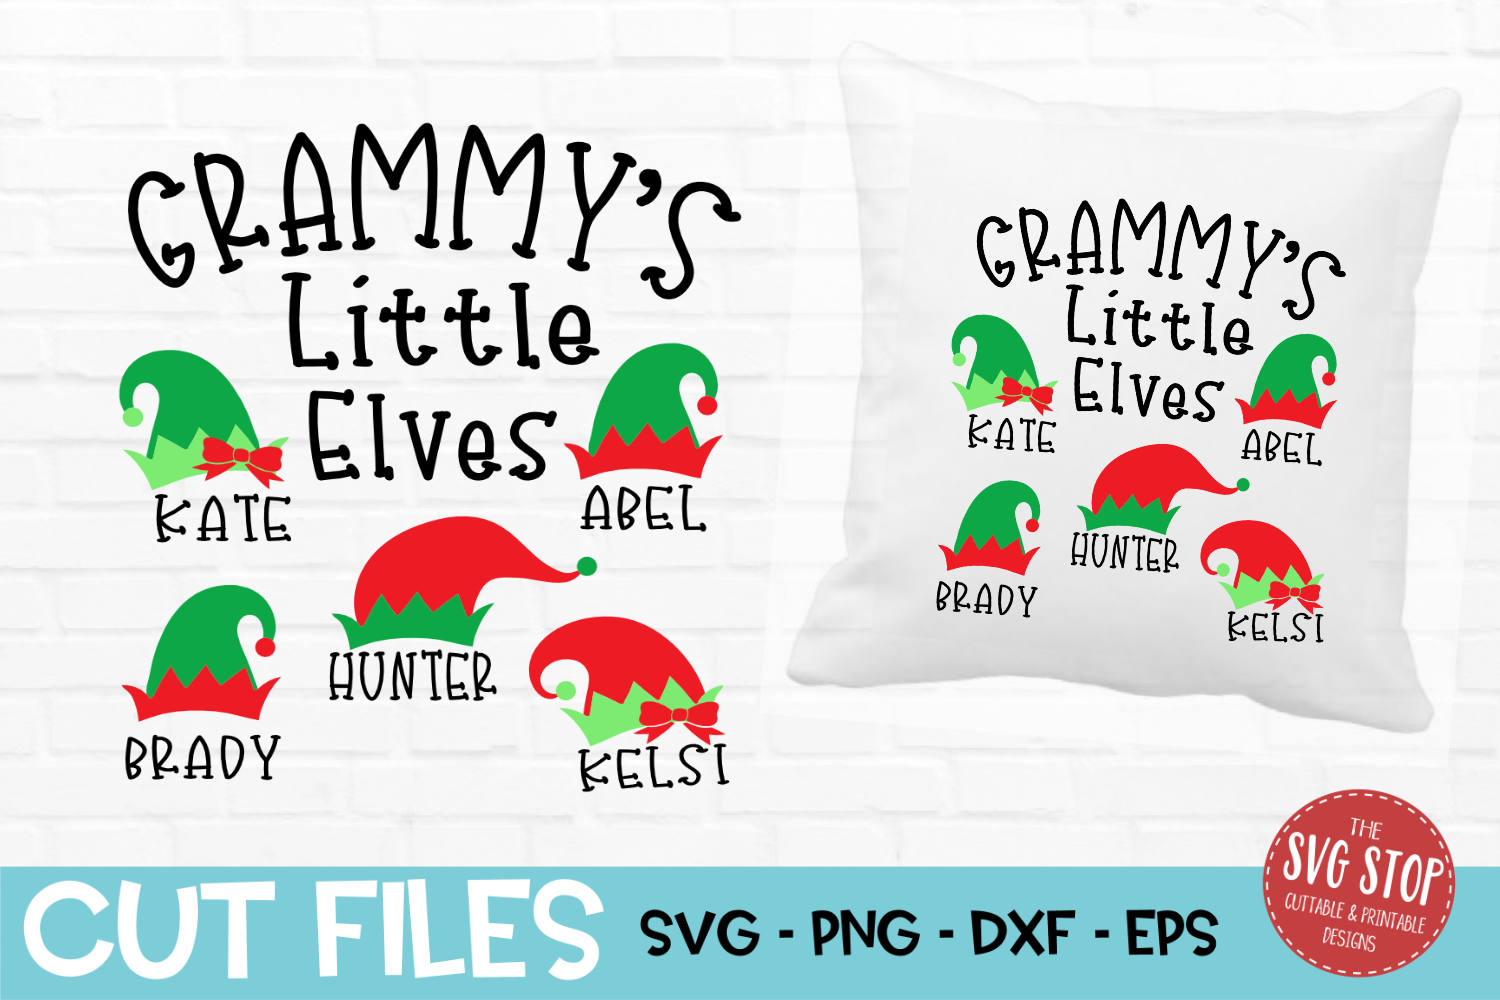 Grammy Little Elves Christmas SVG, PNG, DXF, EPS example image 1